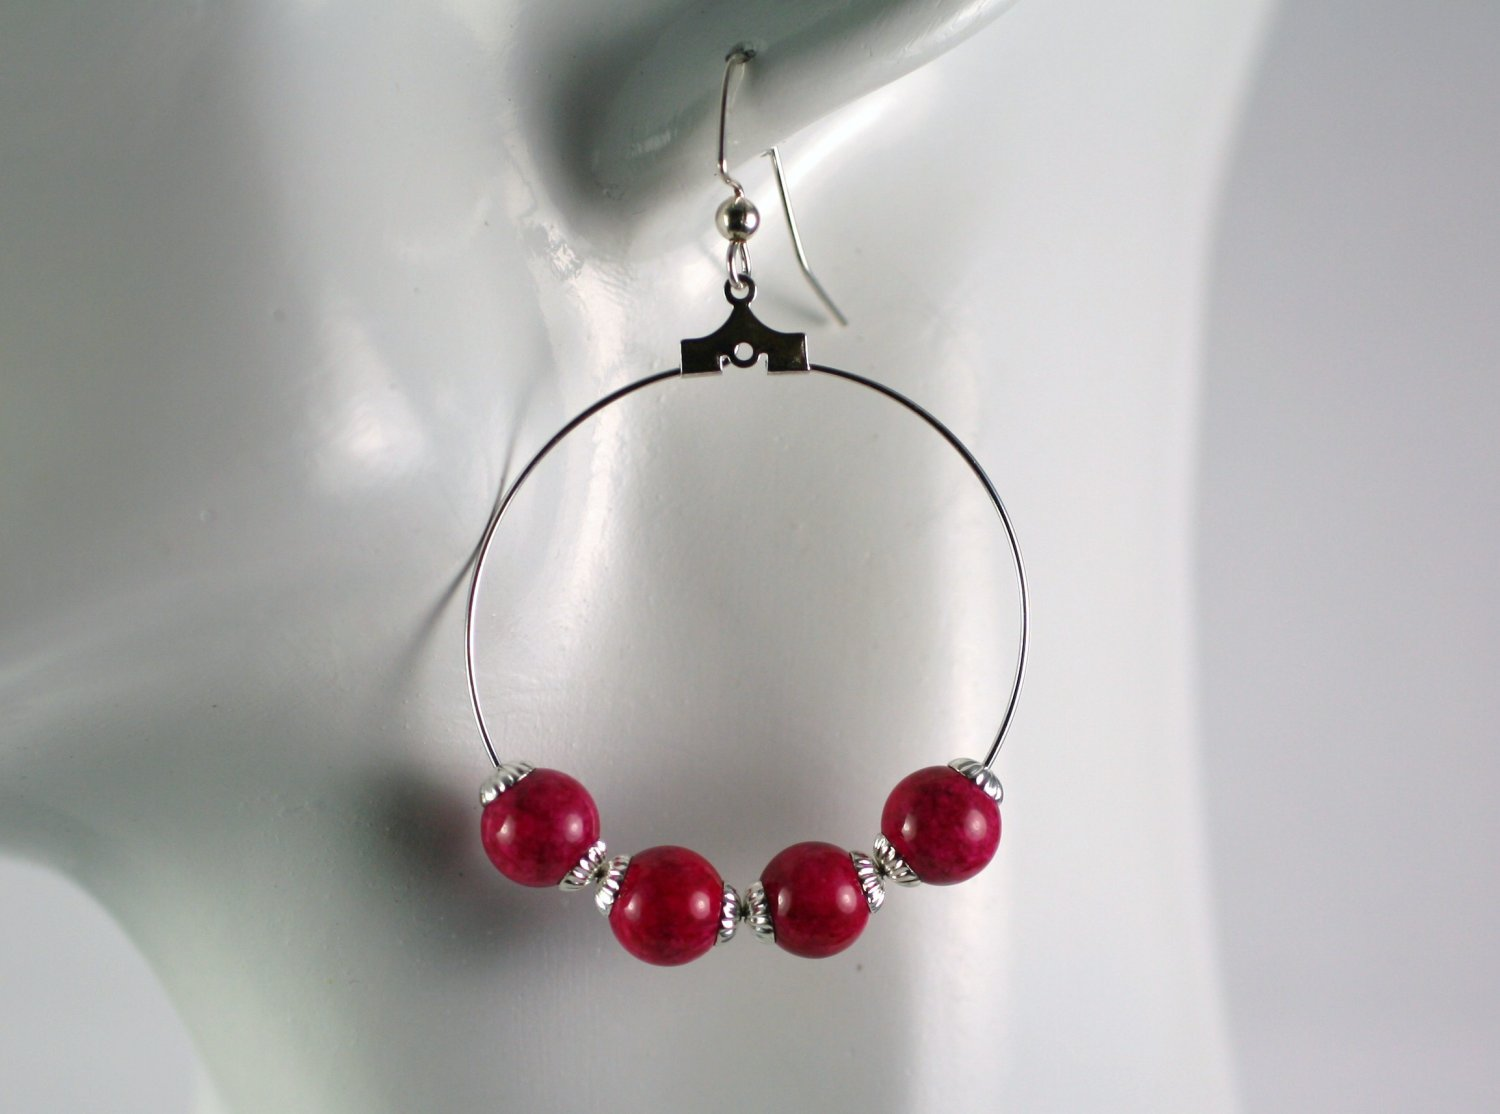 Silver Hoop Earrings with Fushia Pink Fossil Beads 1.5 in.  Handcrafted Jewelry